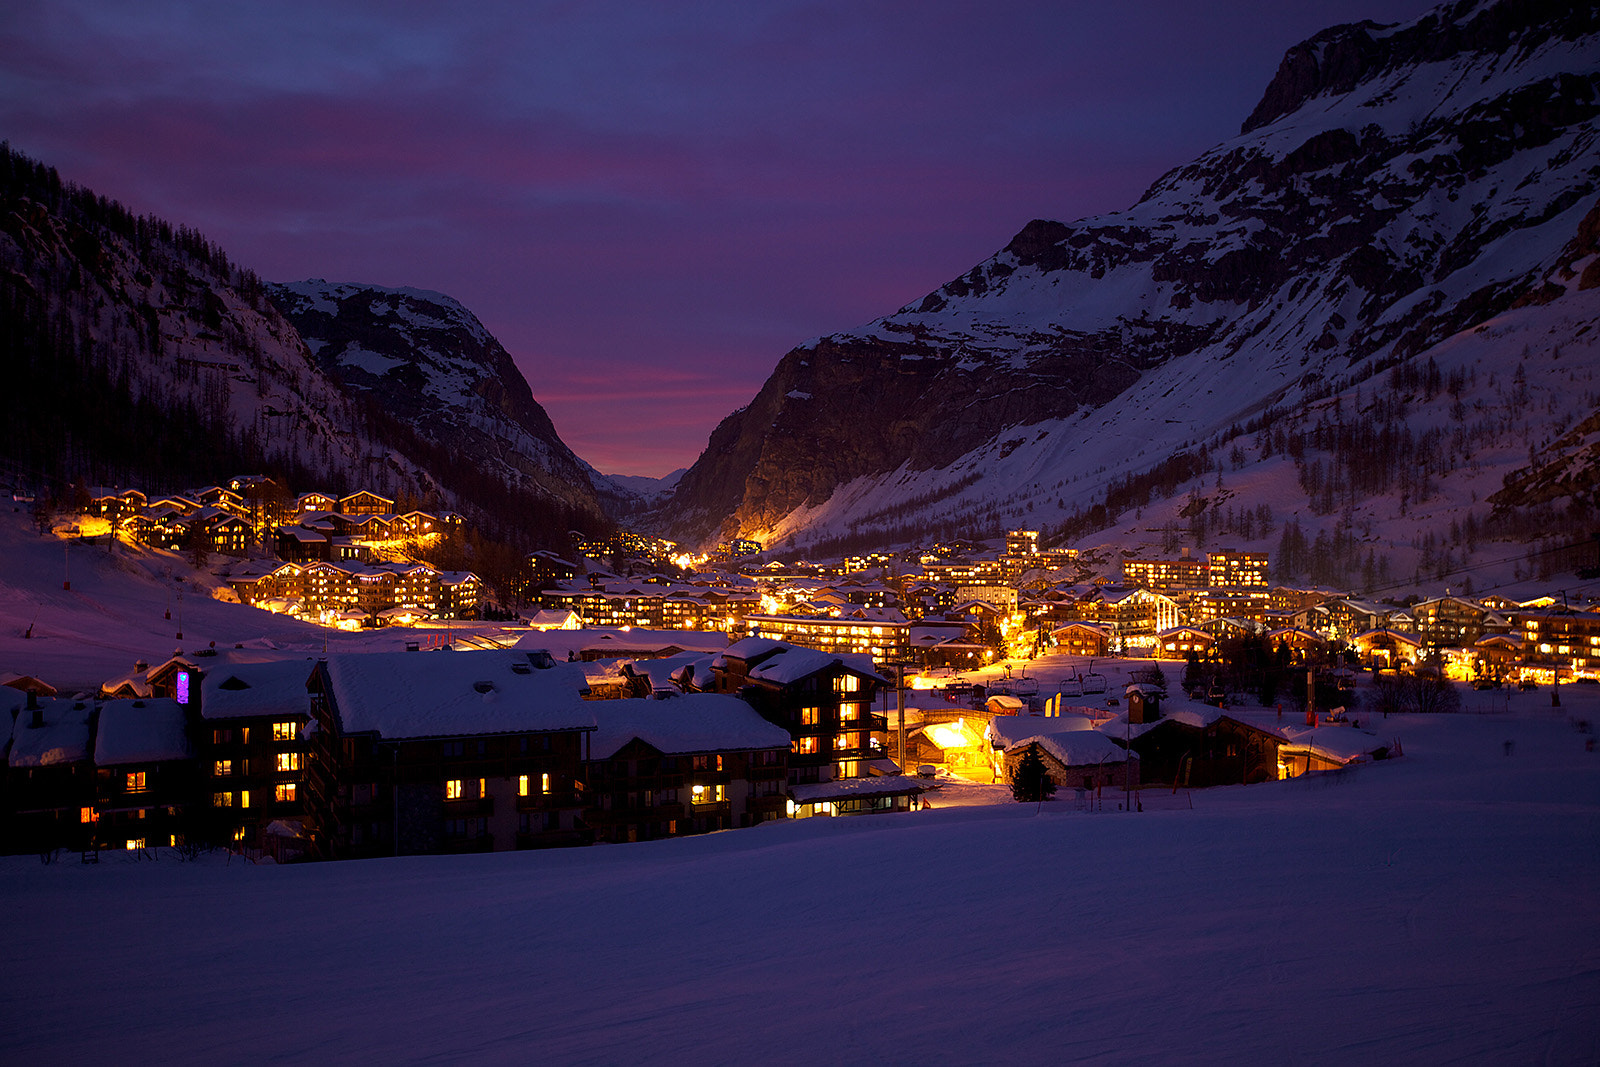 Photograph Val d'Isere at night by Jus Medic on 500px